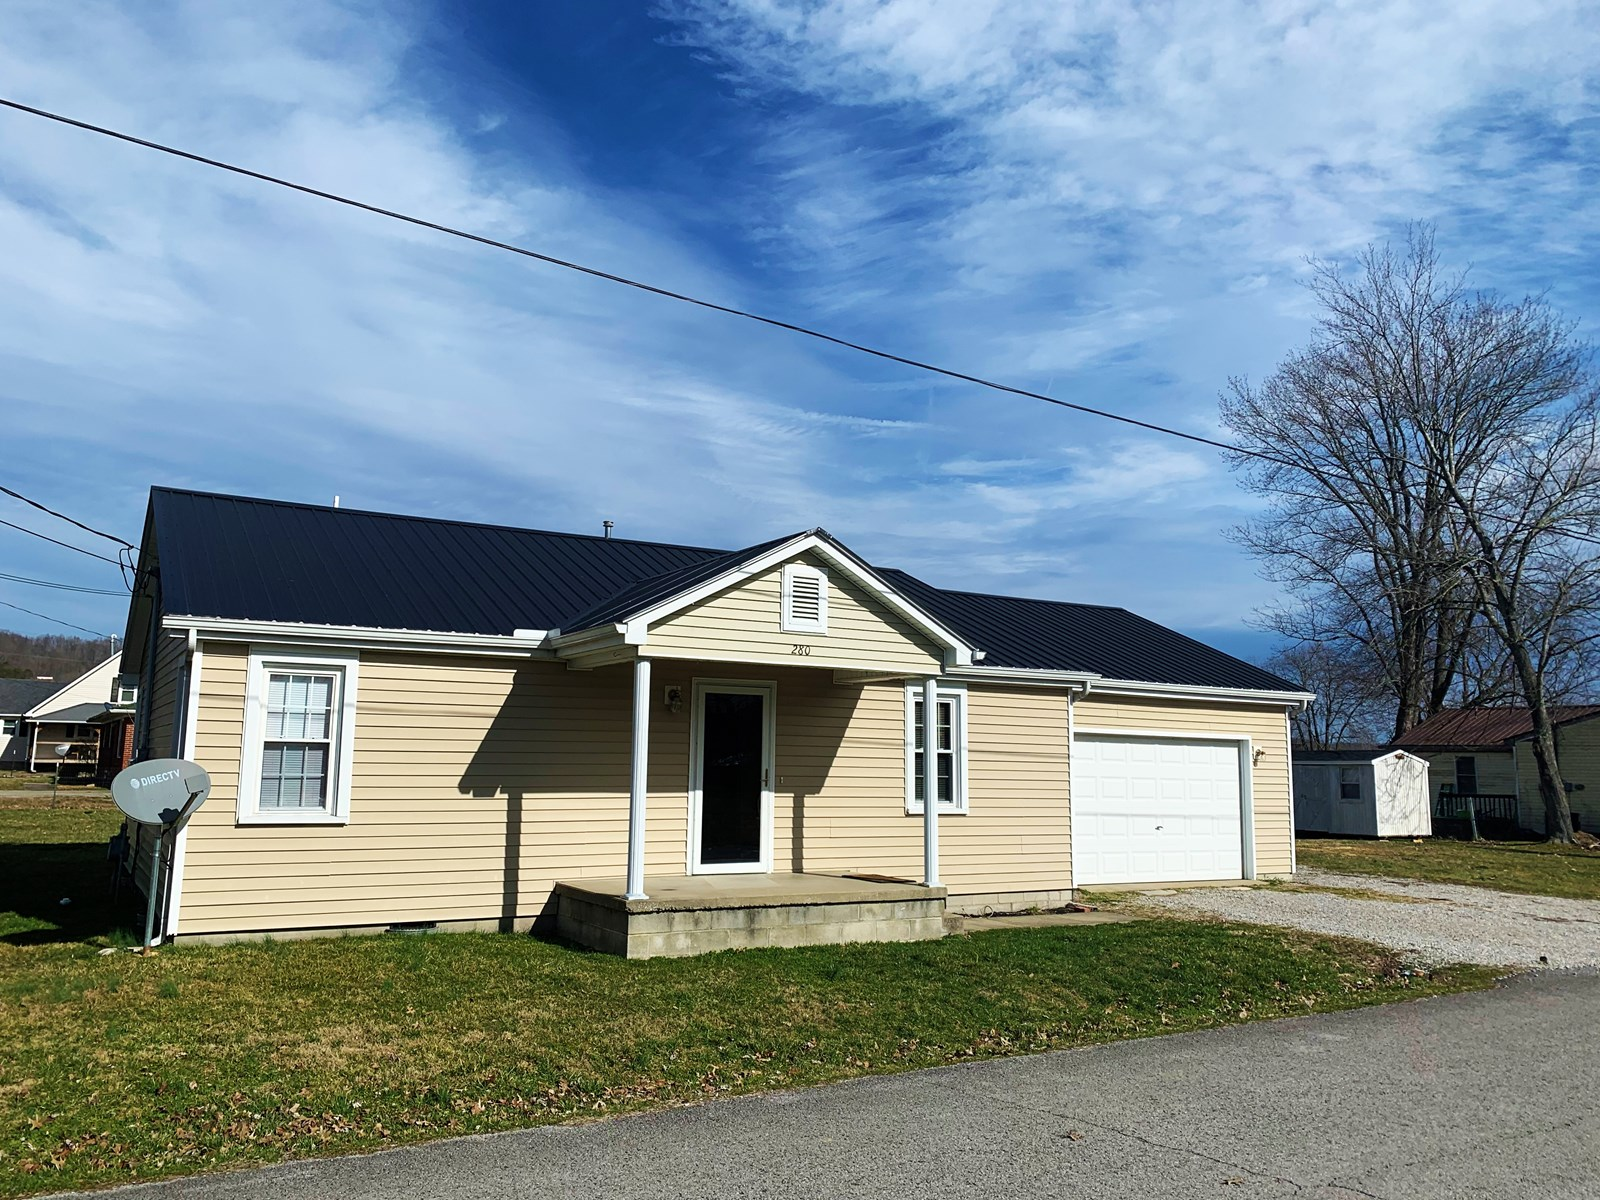 HOME IN TOWN-CITY UTILITIES-GREAT LOCATION-LIBERTY, KY.